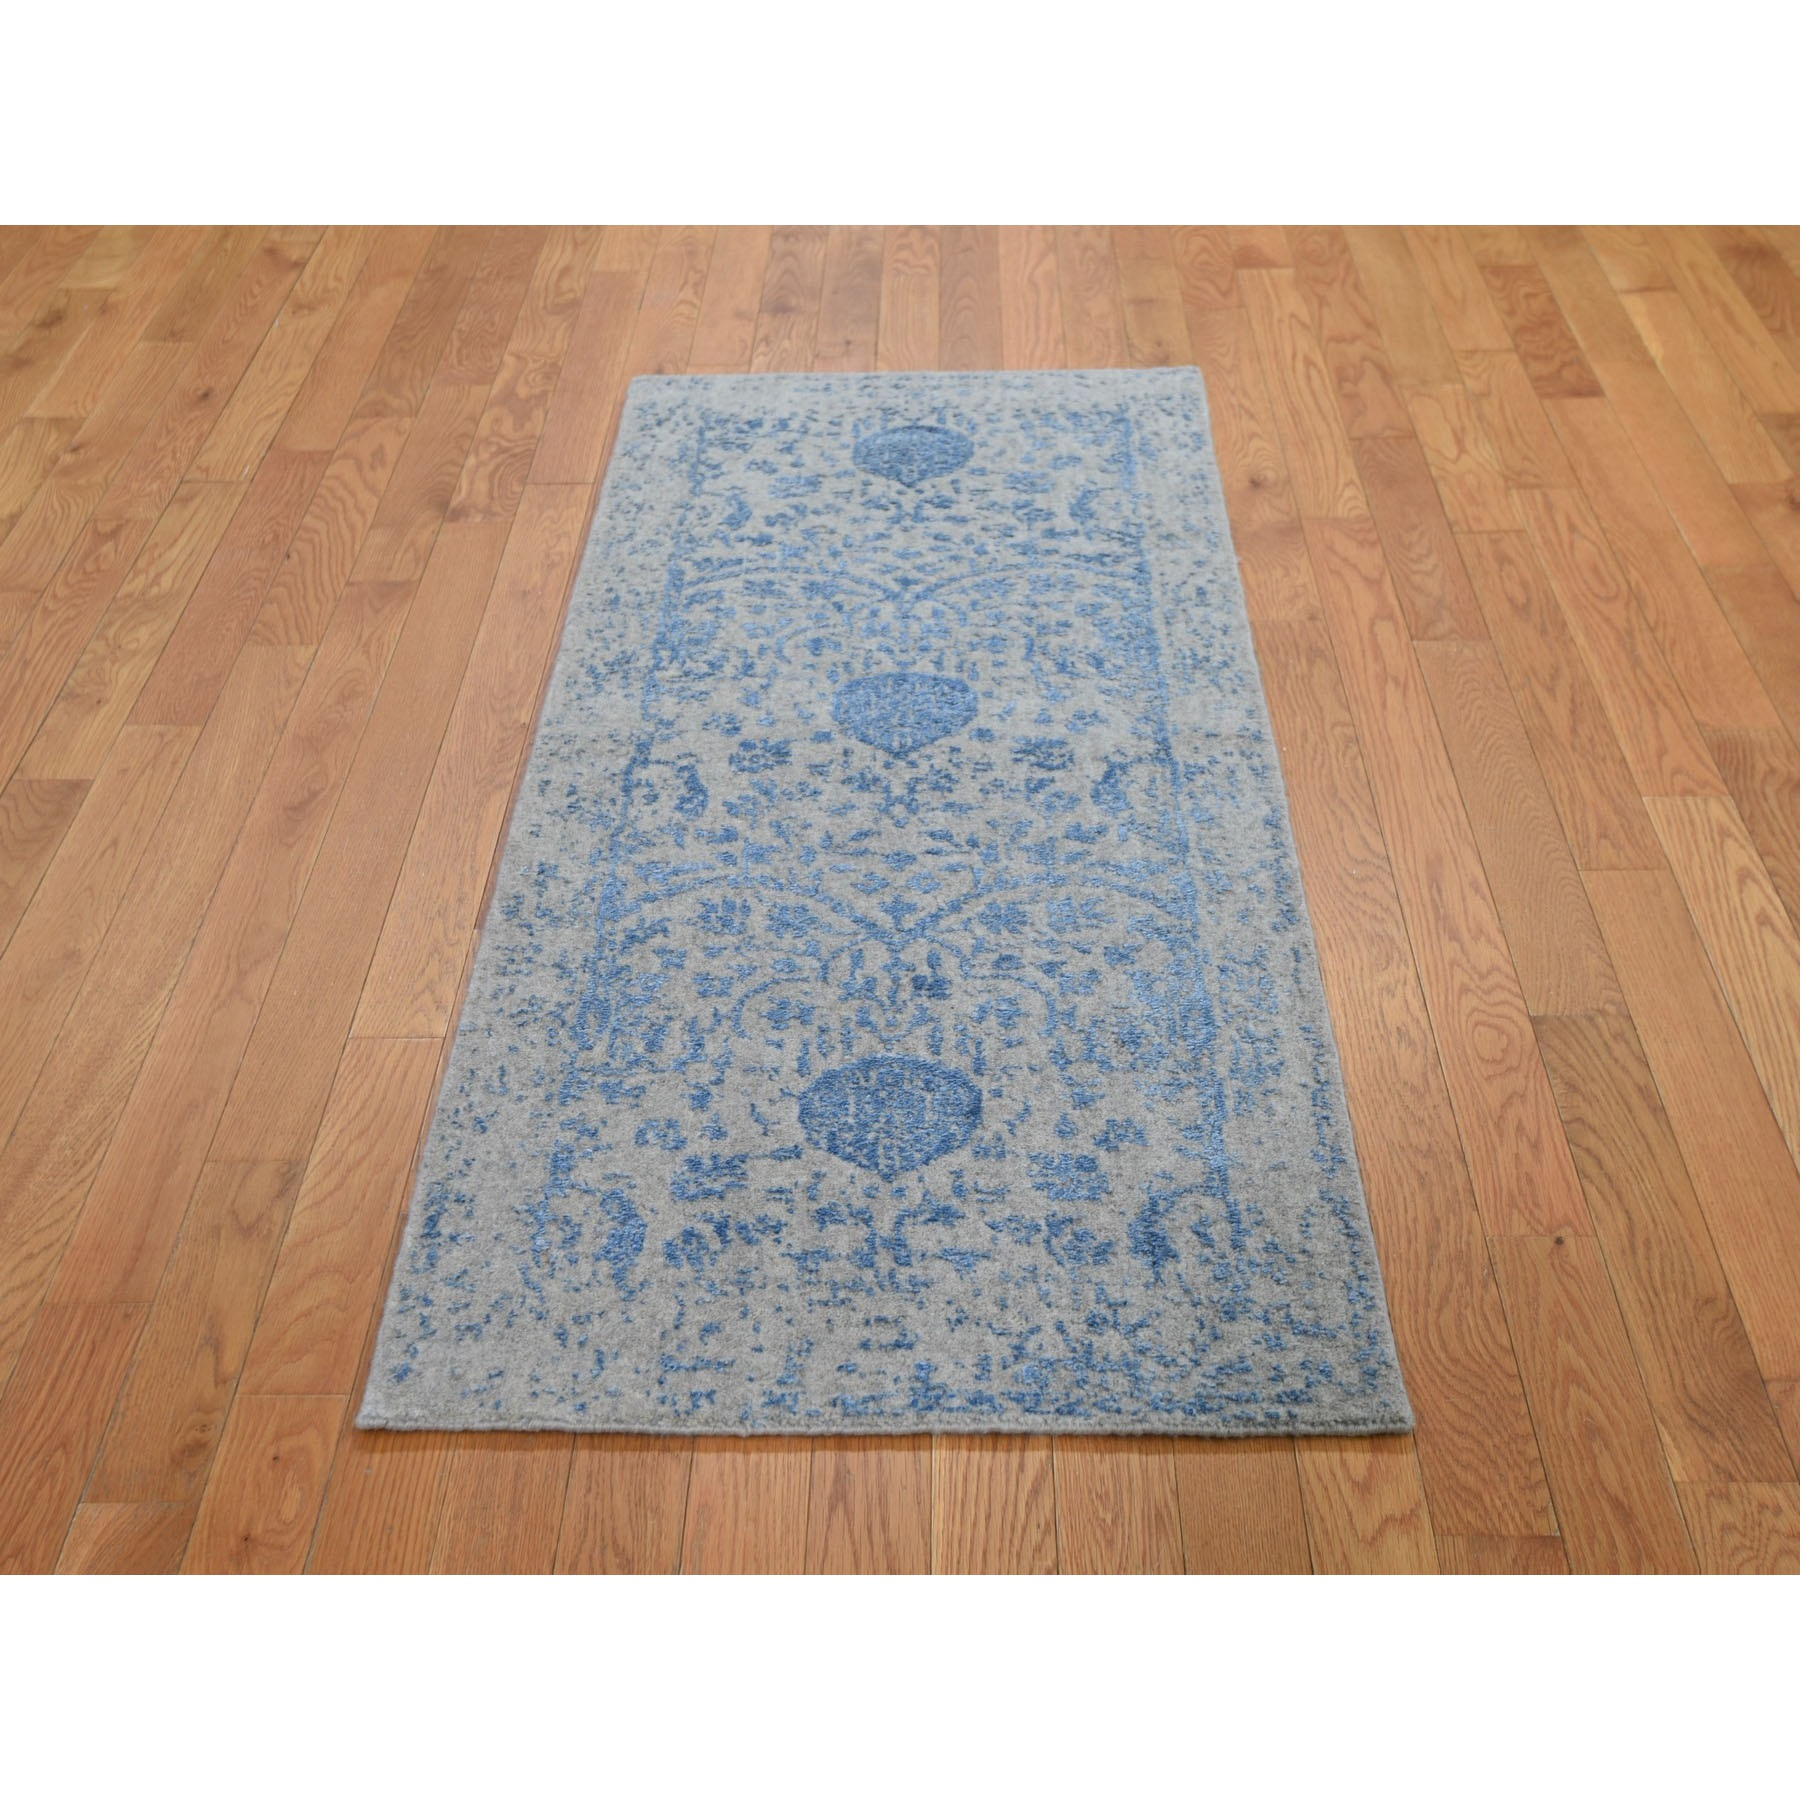 "2'5""x5'10"" Blue Jacquard Hand Loomed Wool and Art Silk Pomegranate Design Runner Oriental Rug"